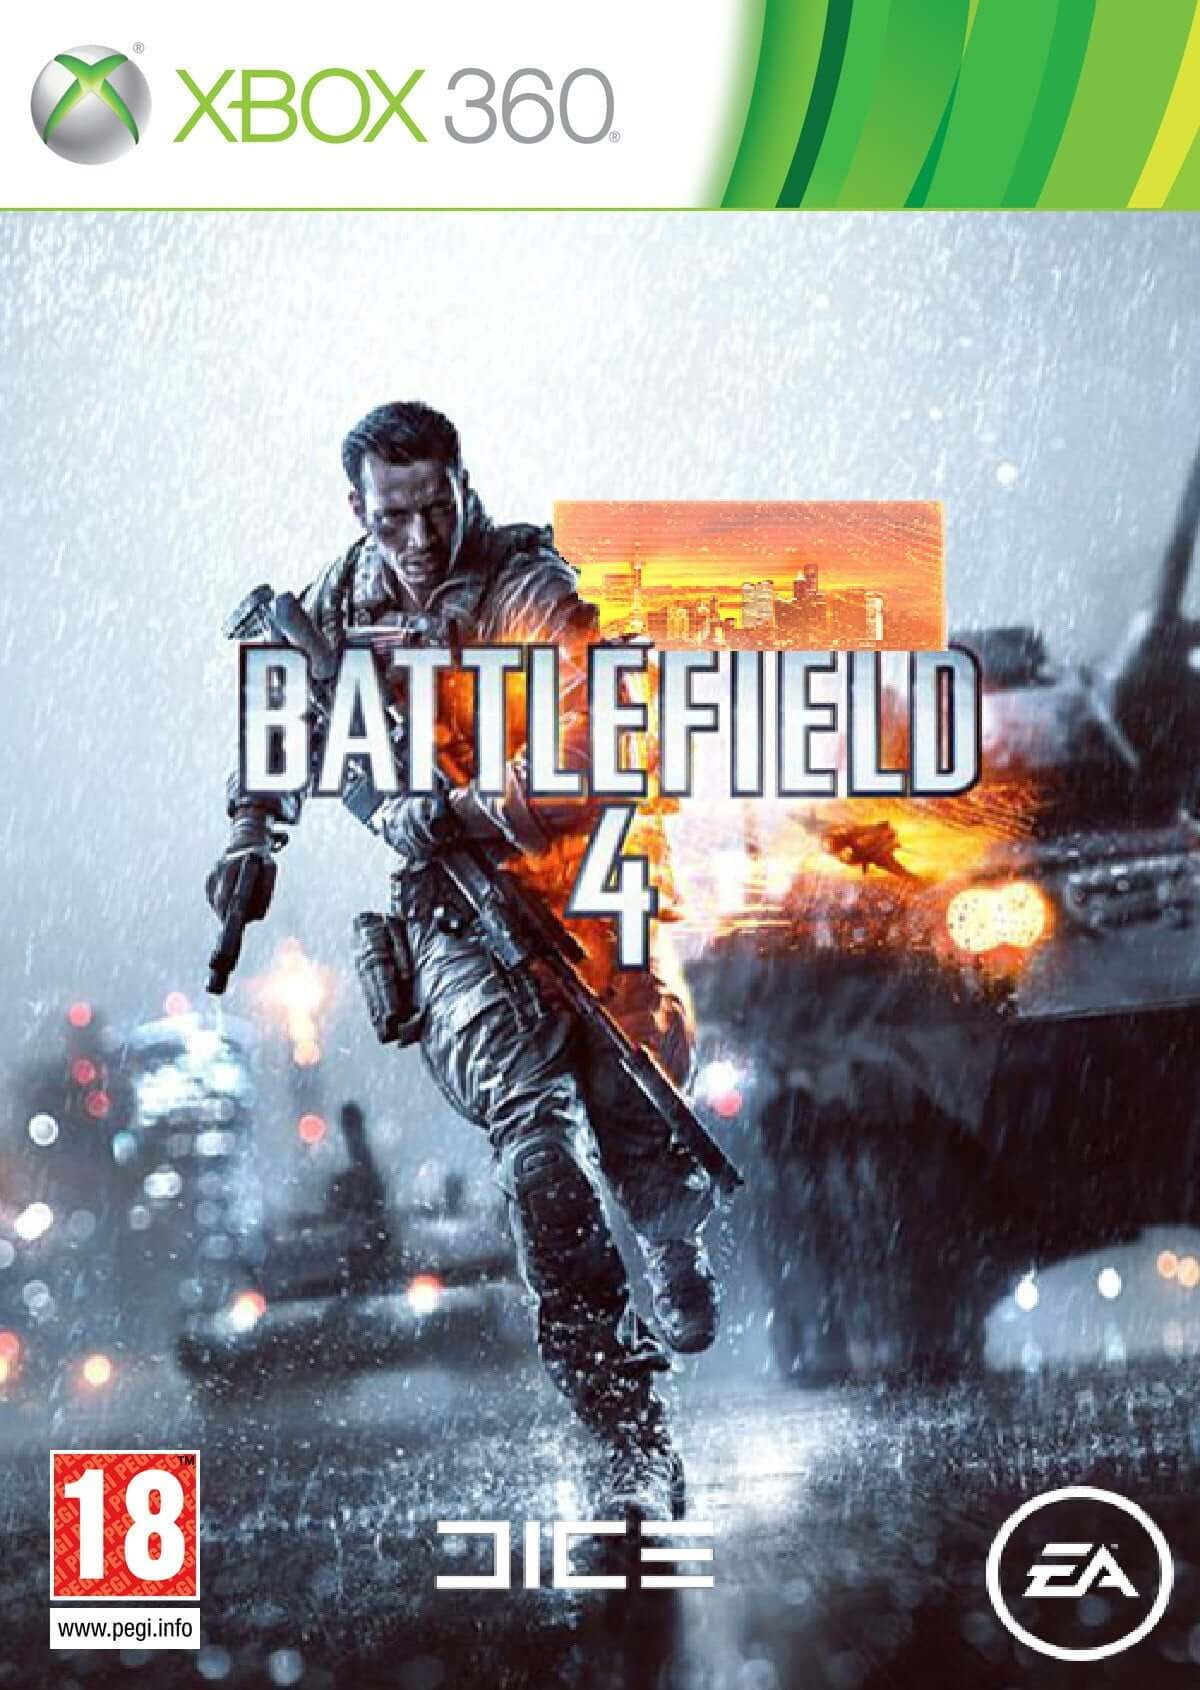 Buy Battlefield 4 (XBOX 360) XBOX 360 Game in Egypt - Shamy Stores